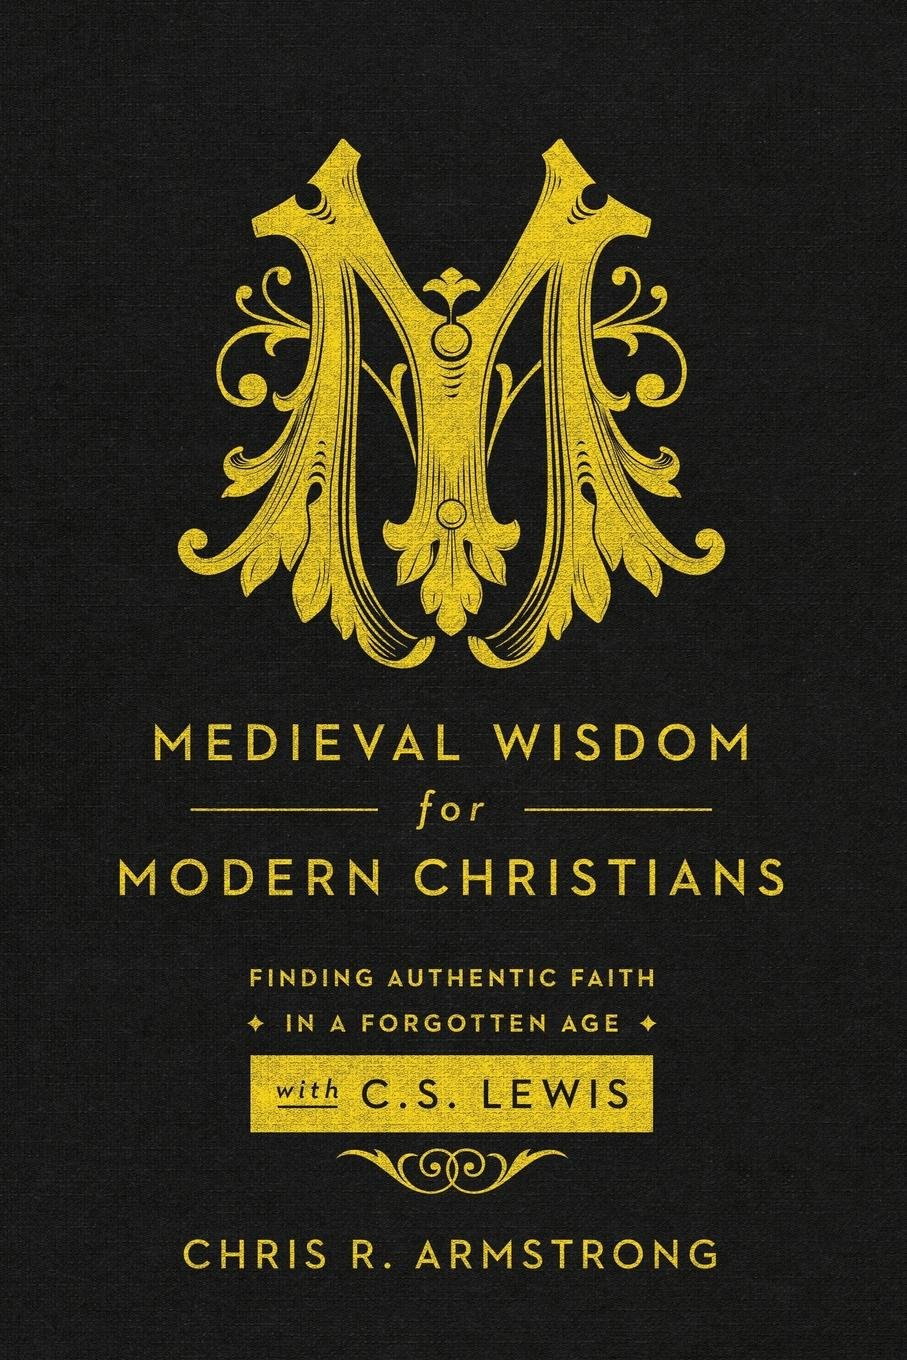 Medieval Wisdom for Modern Christians: Finding Authentic Faith in a Forgotten Age with C. S. Lewis by Chris R. Armstrong